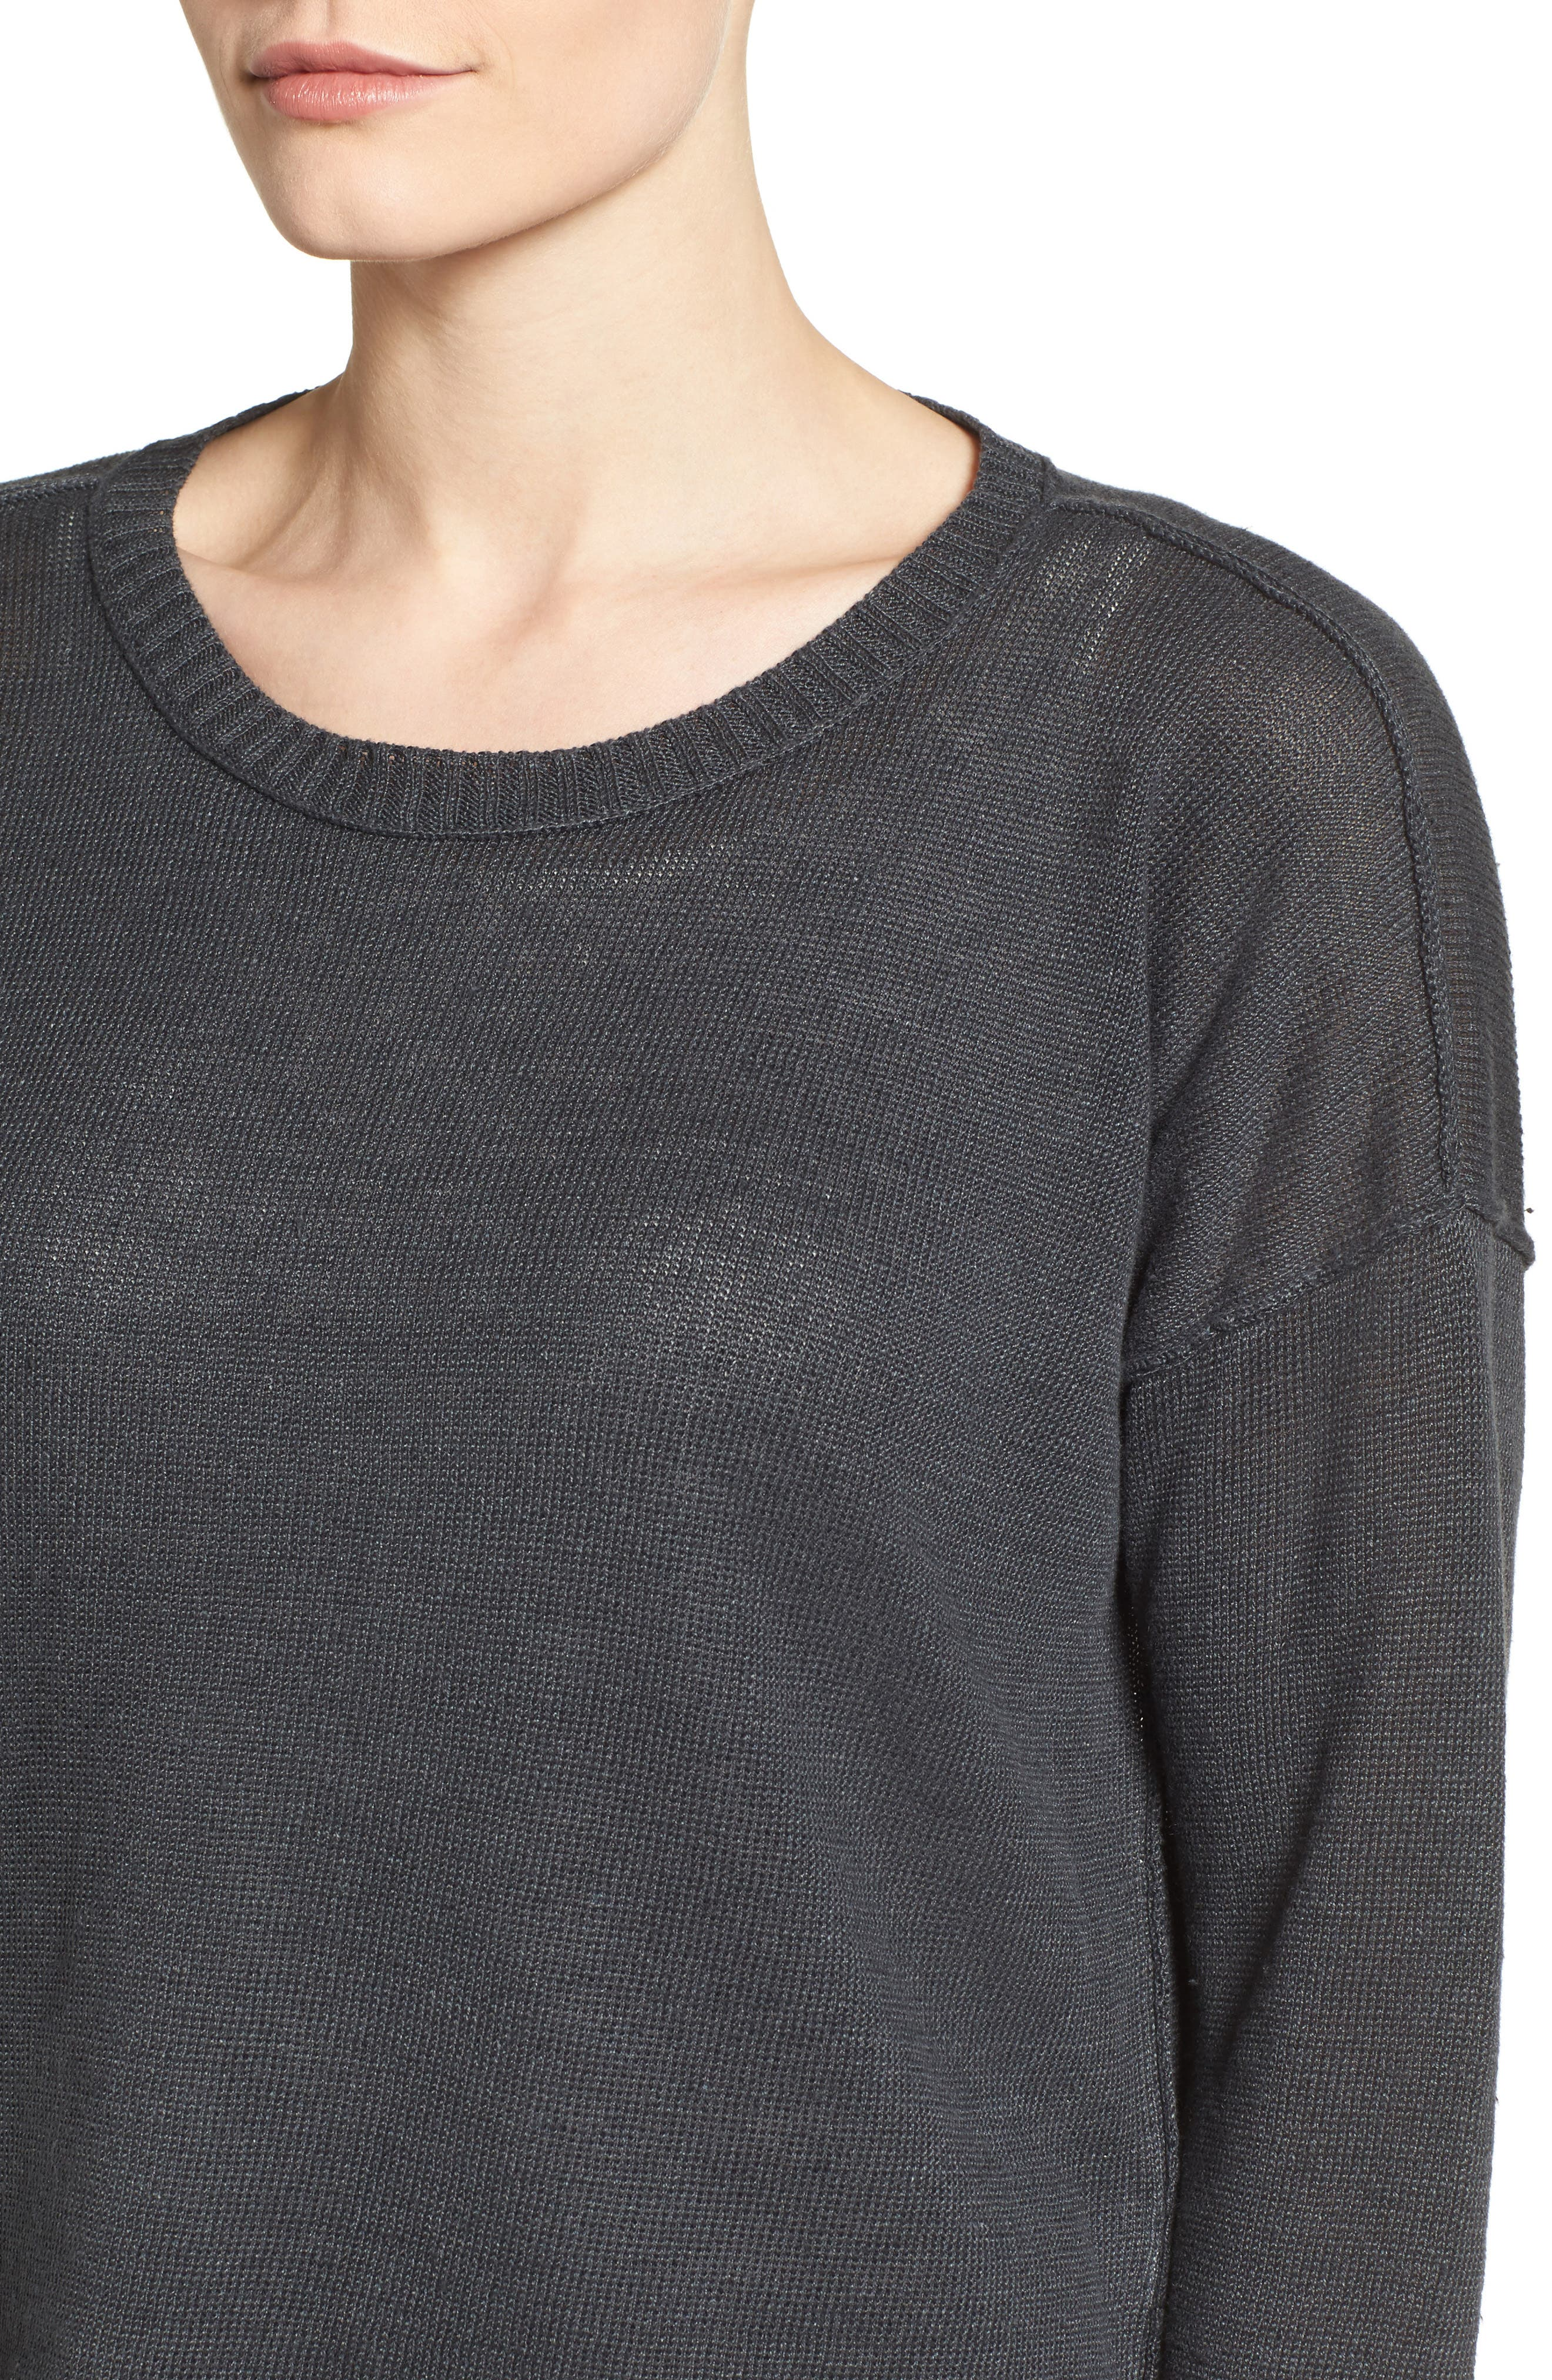 Organic Linen Sweater,                             Alternate thumbnail 4, color,                             025